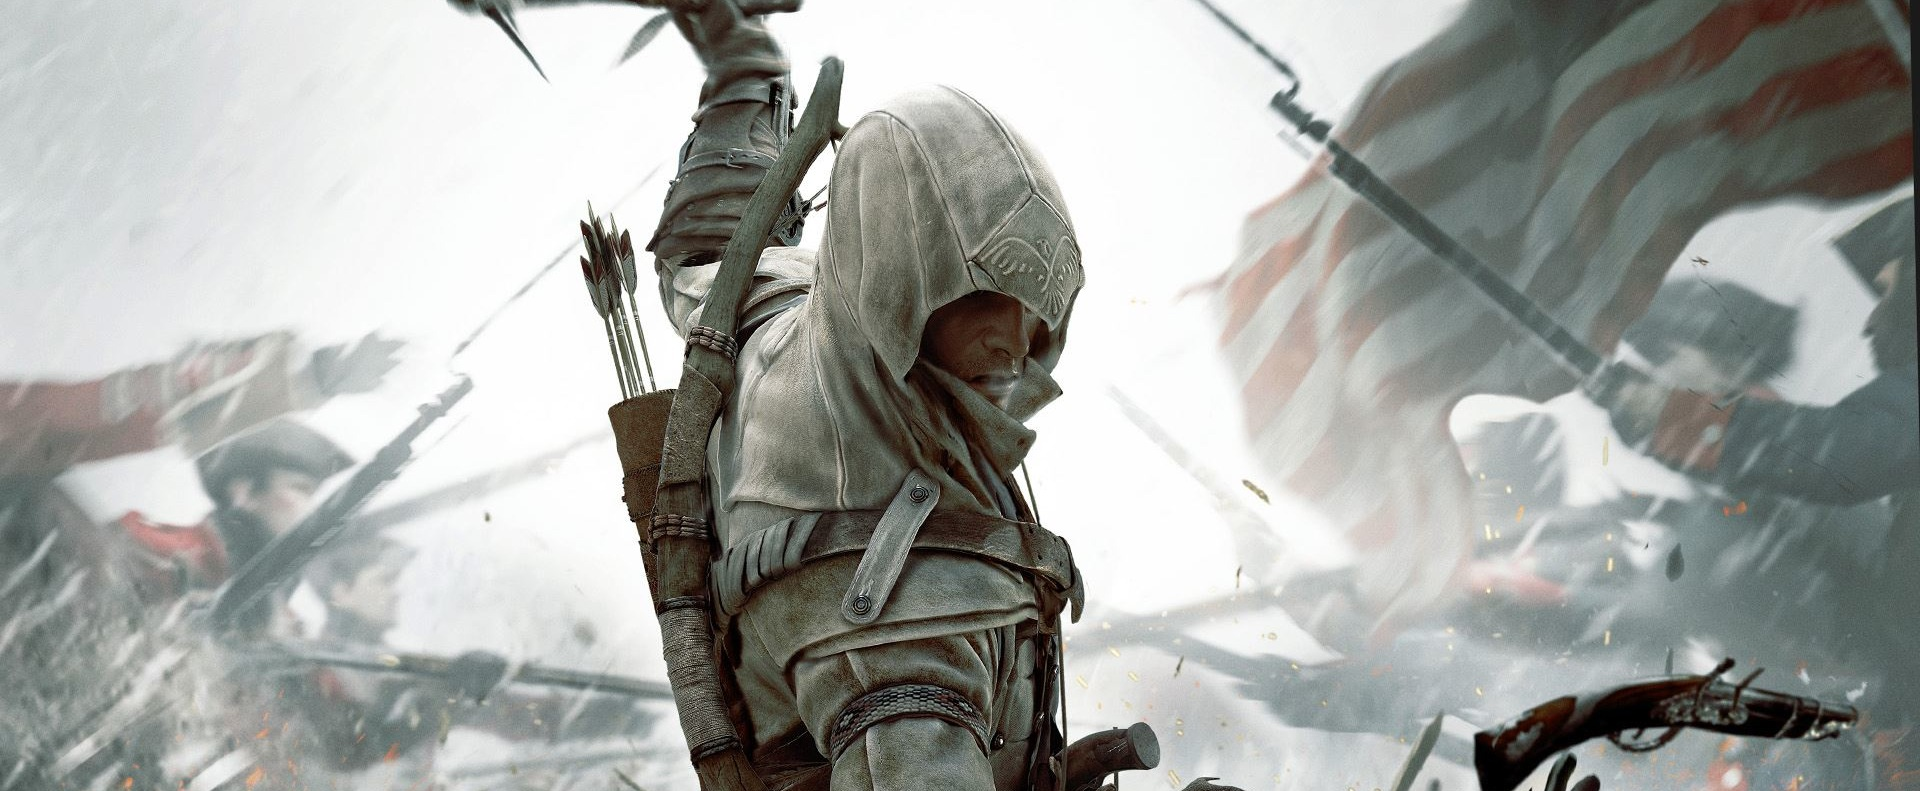 Assassin's Creed III Archives - GameRevolution